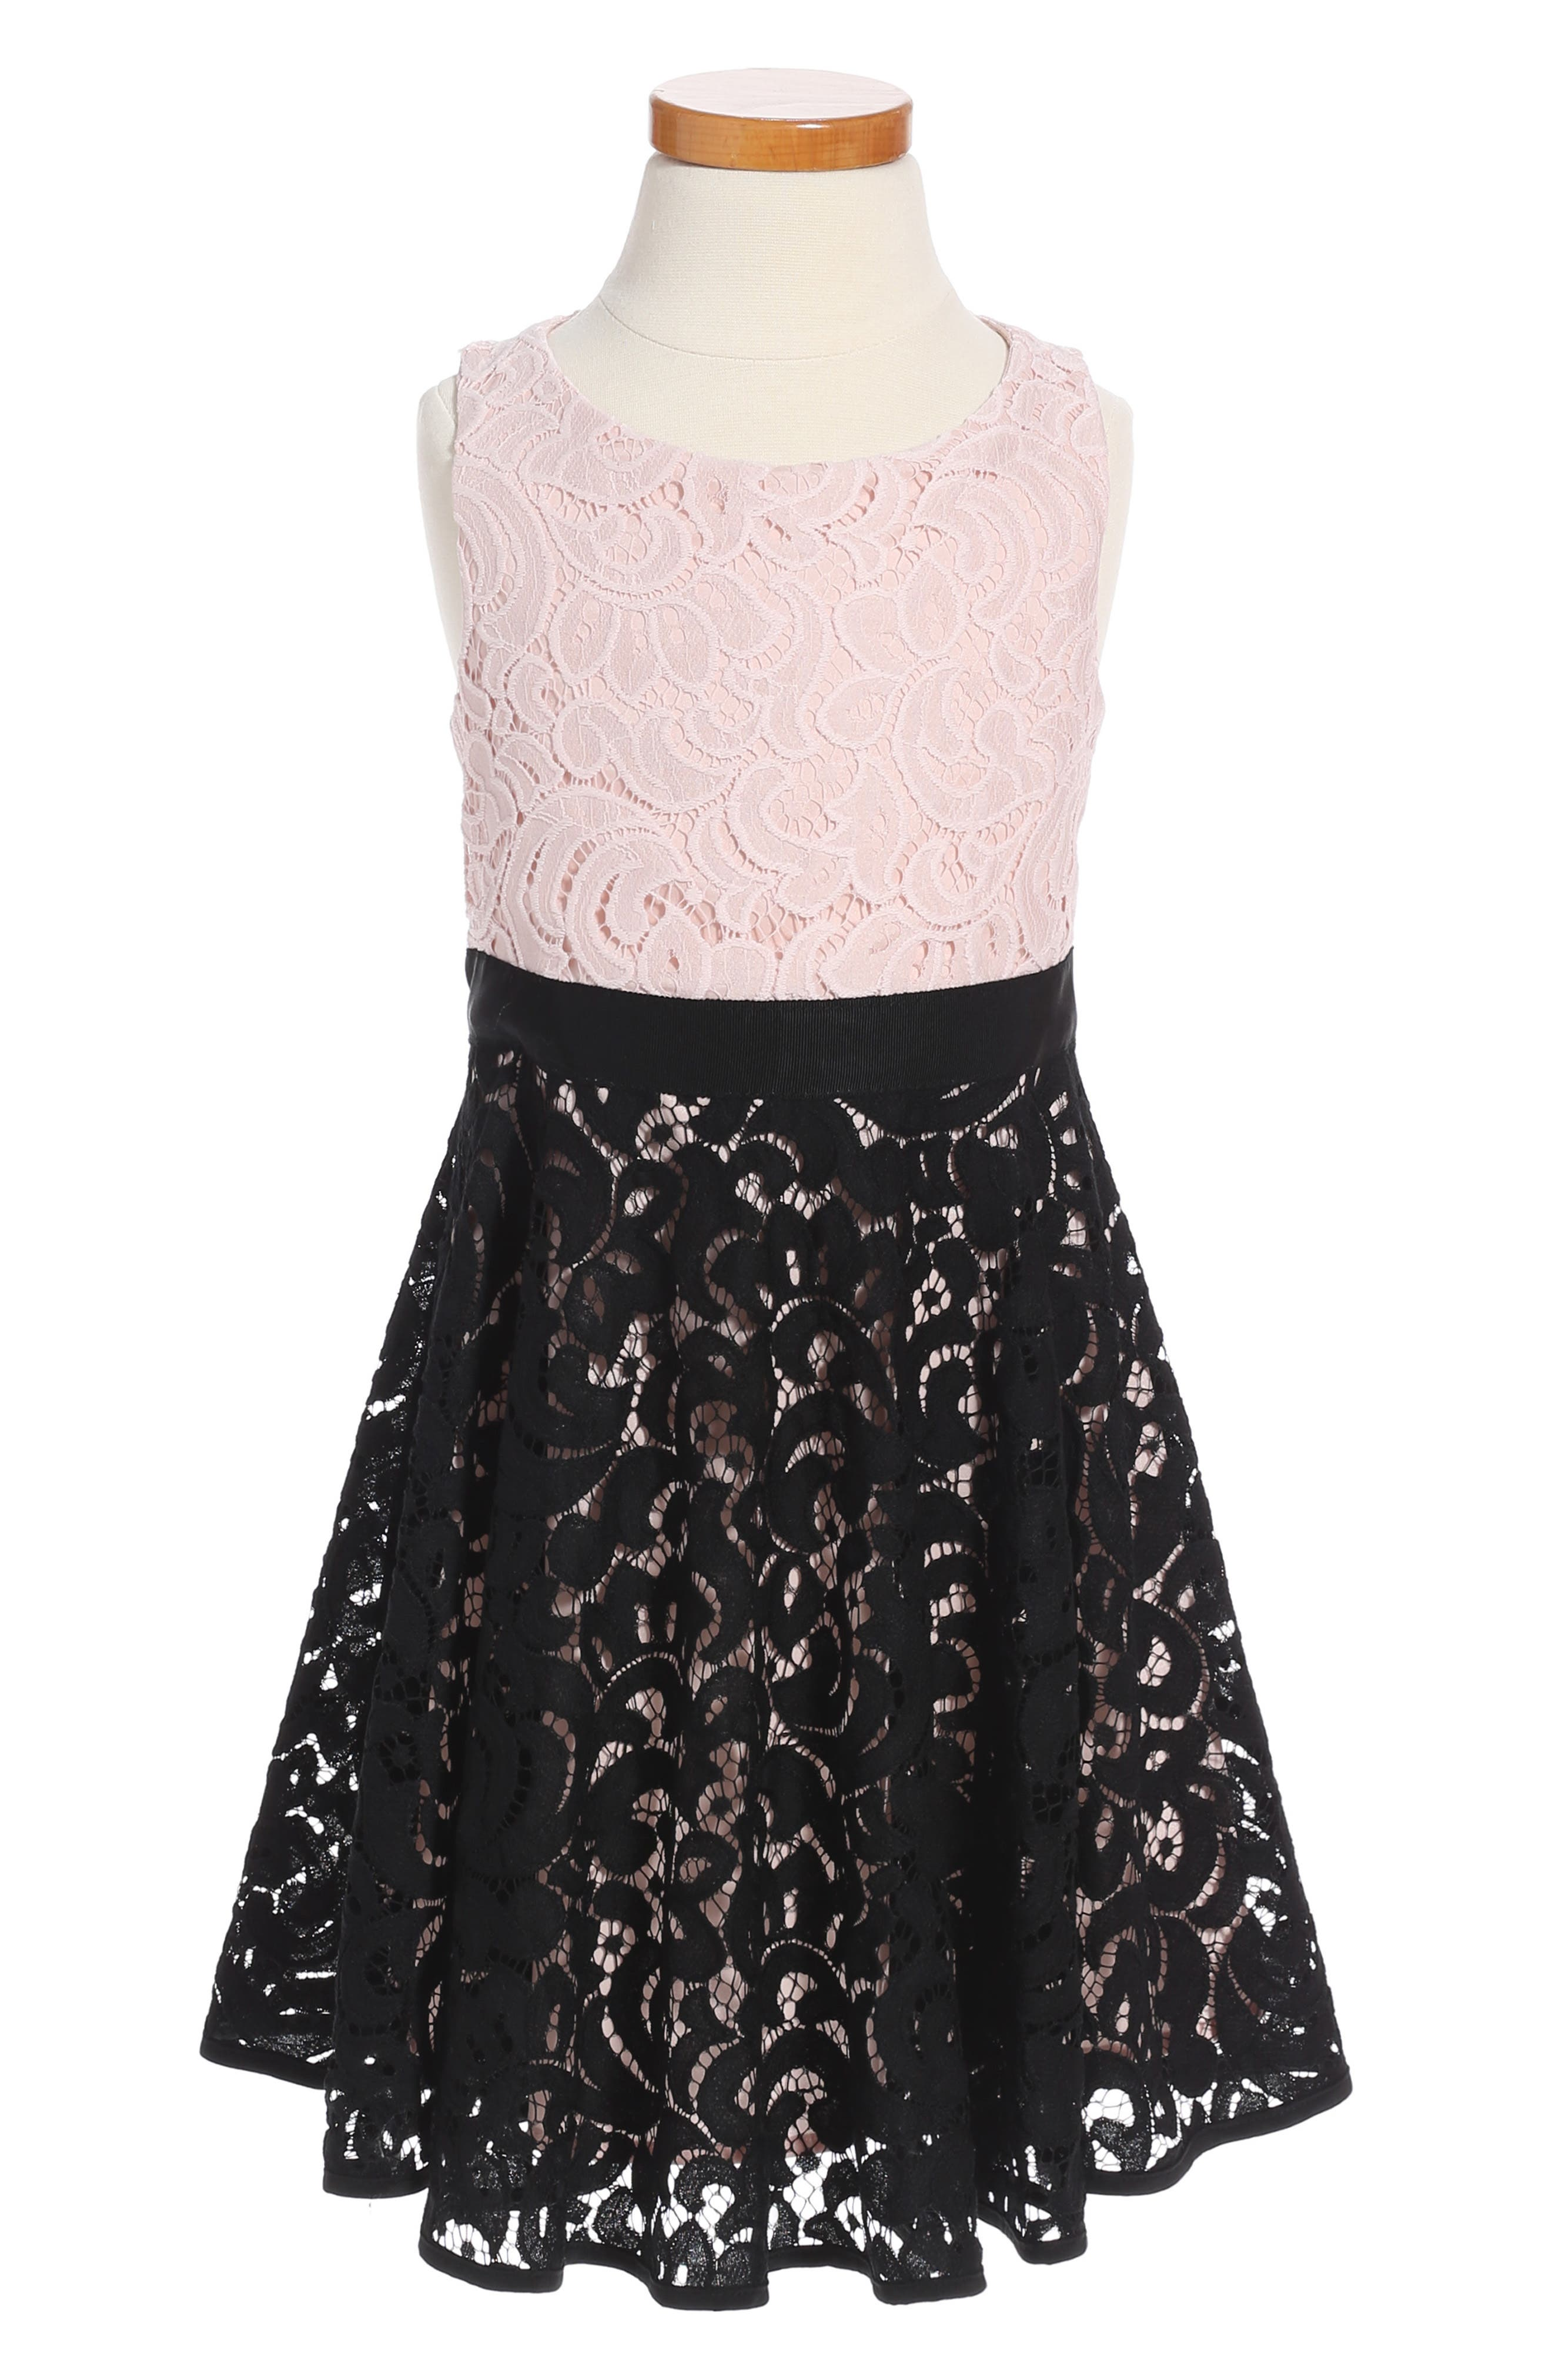 Main Image - Milly Minis Lace Combo Dress (Toddler Girls, Little Girls & Big Girls)